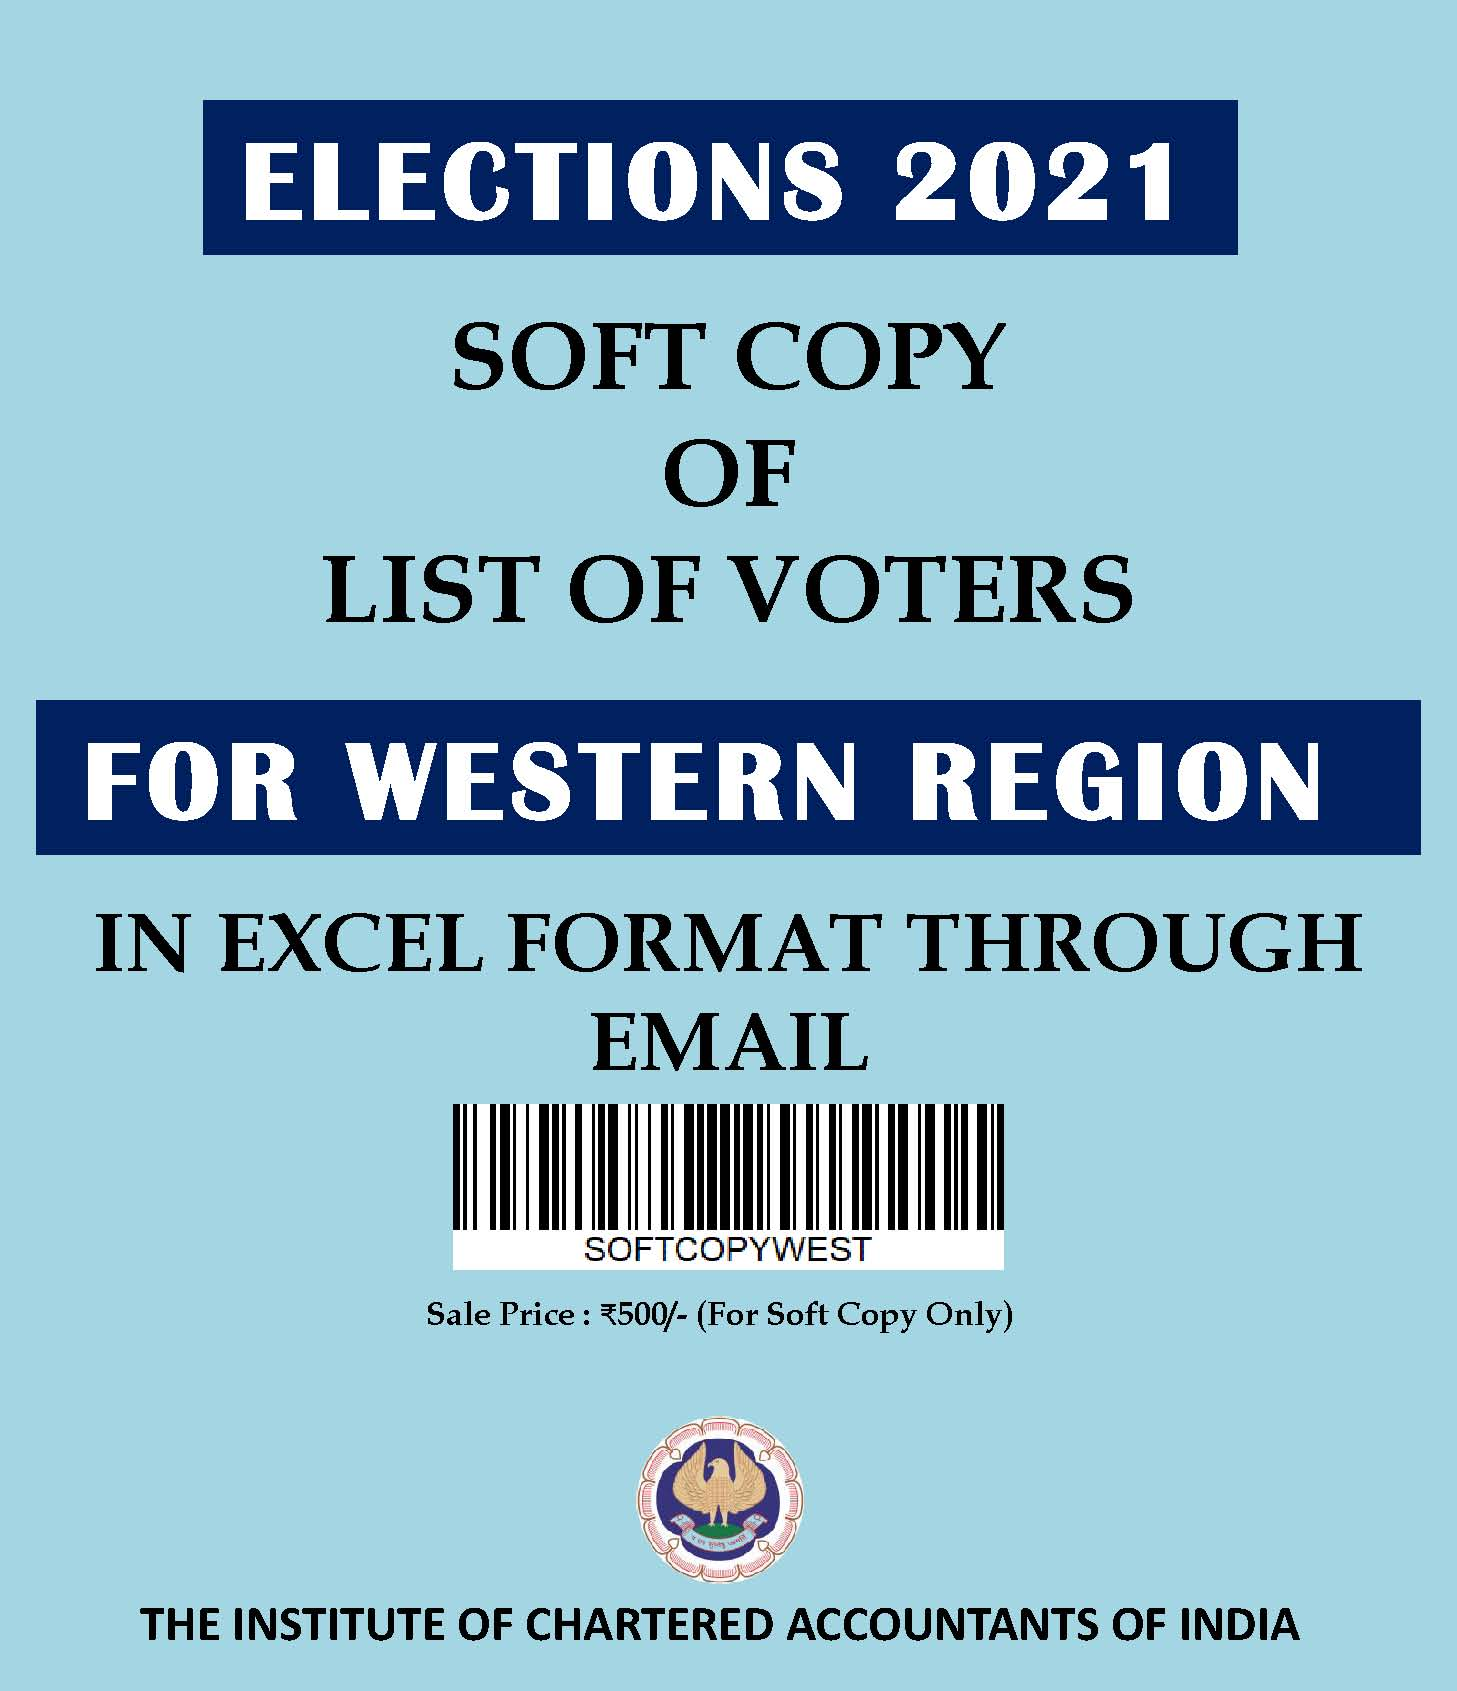 SOFT COPY: List of Voters for Western Region (Elections 2021) in Excel Format Through E-mail